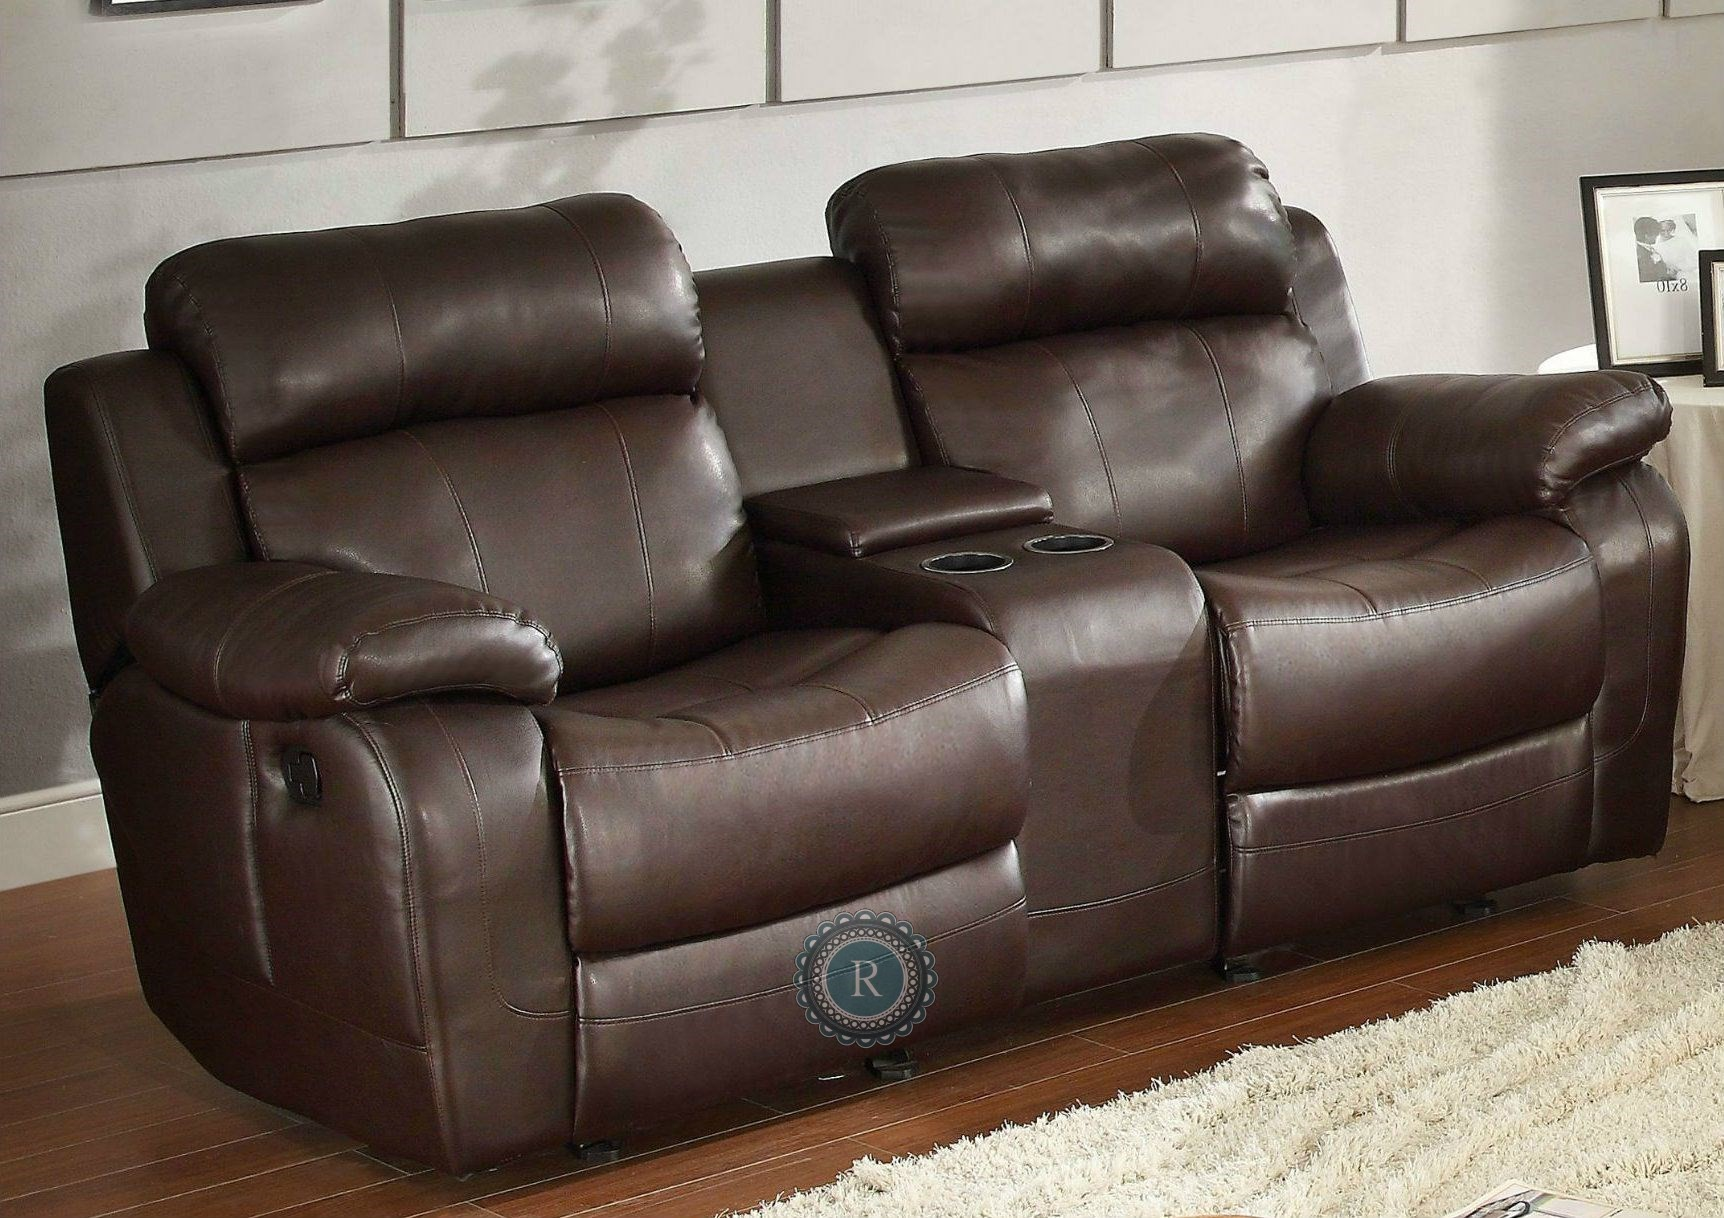 Marille Dark Brown Double Glider Reclining Loveseat From